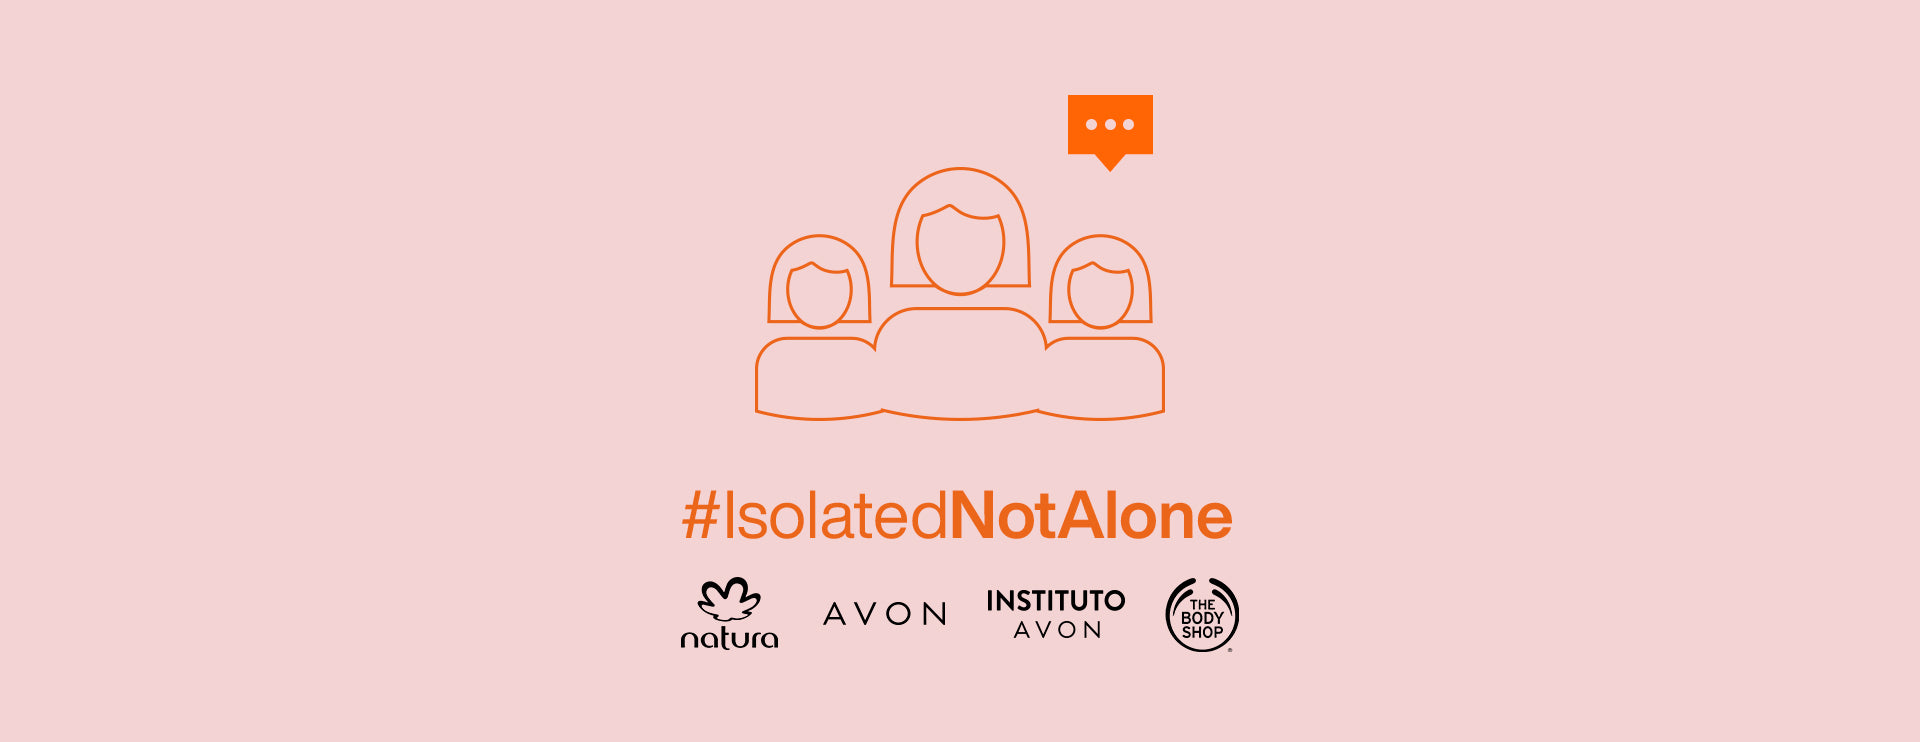 #isolatednotalone